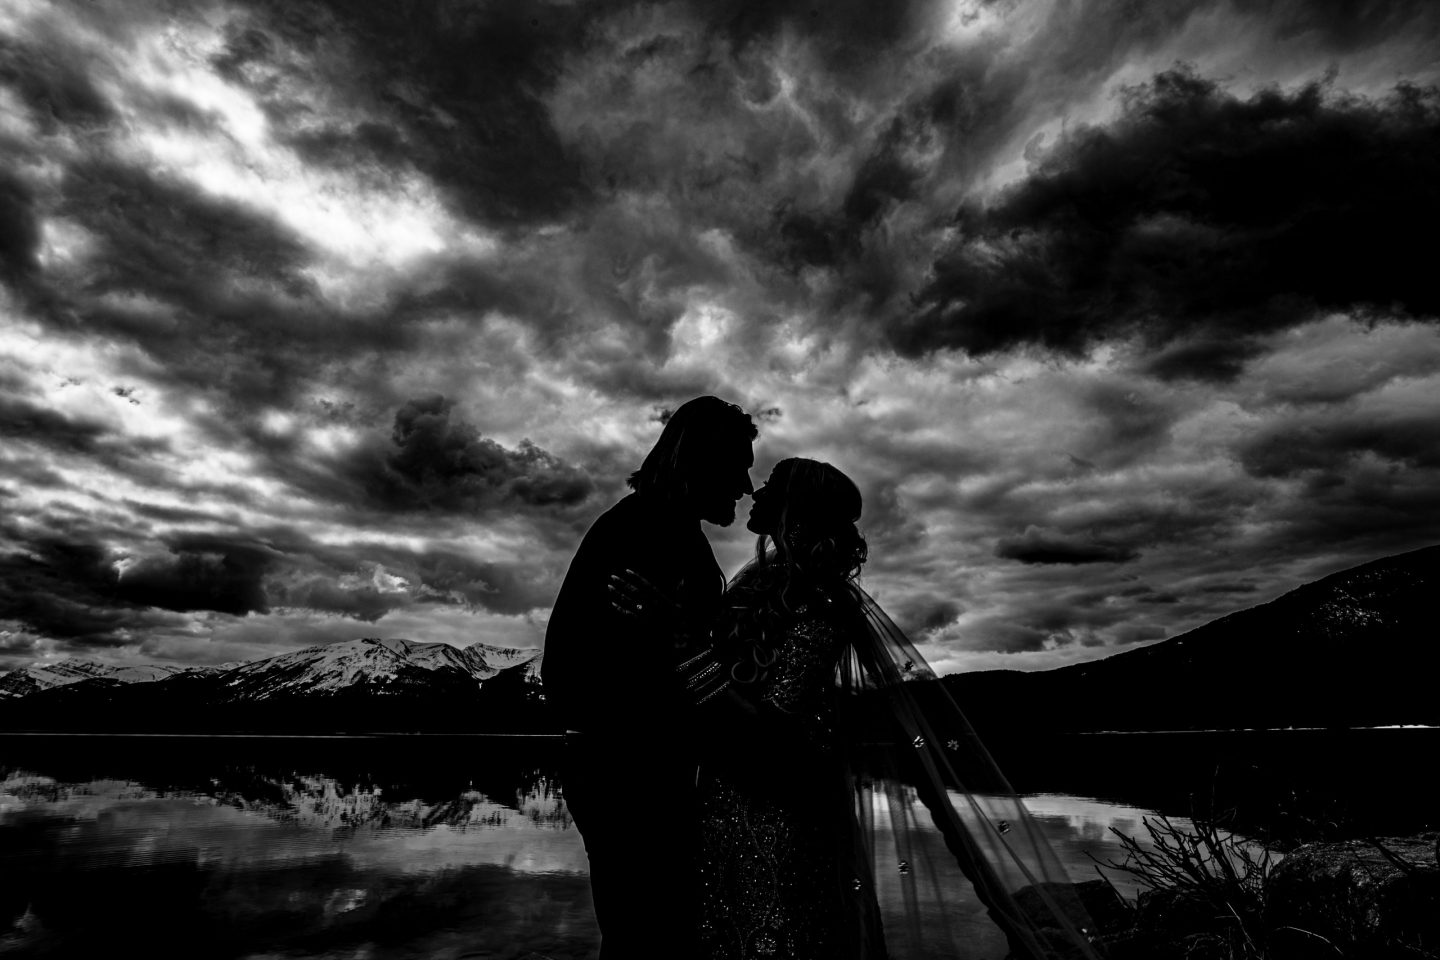 silhouette of man and woman with clouds in the background -8 uses for your Jasper engagement photos